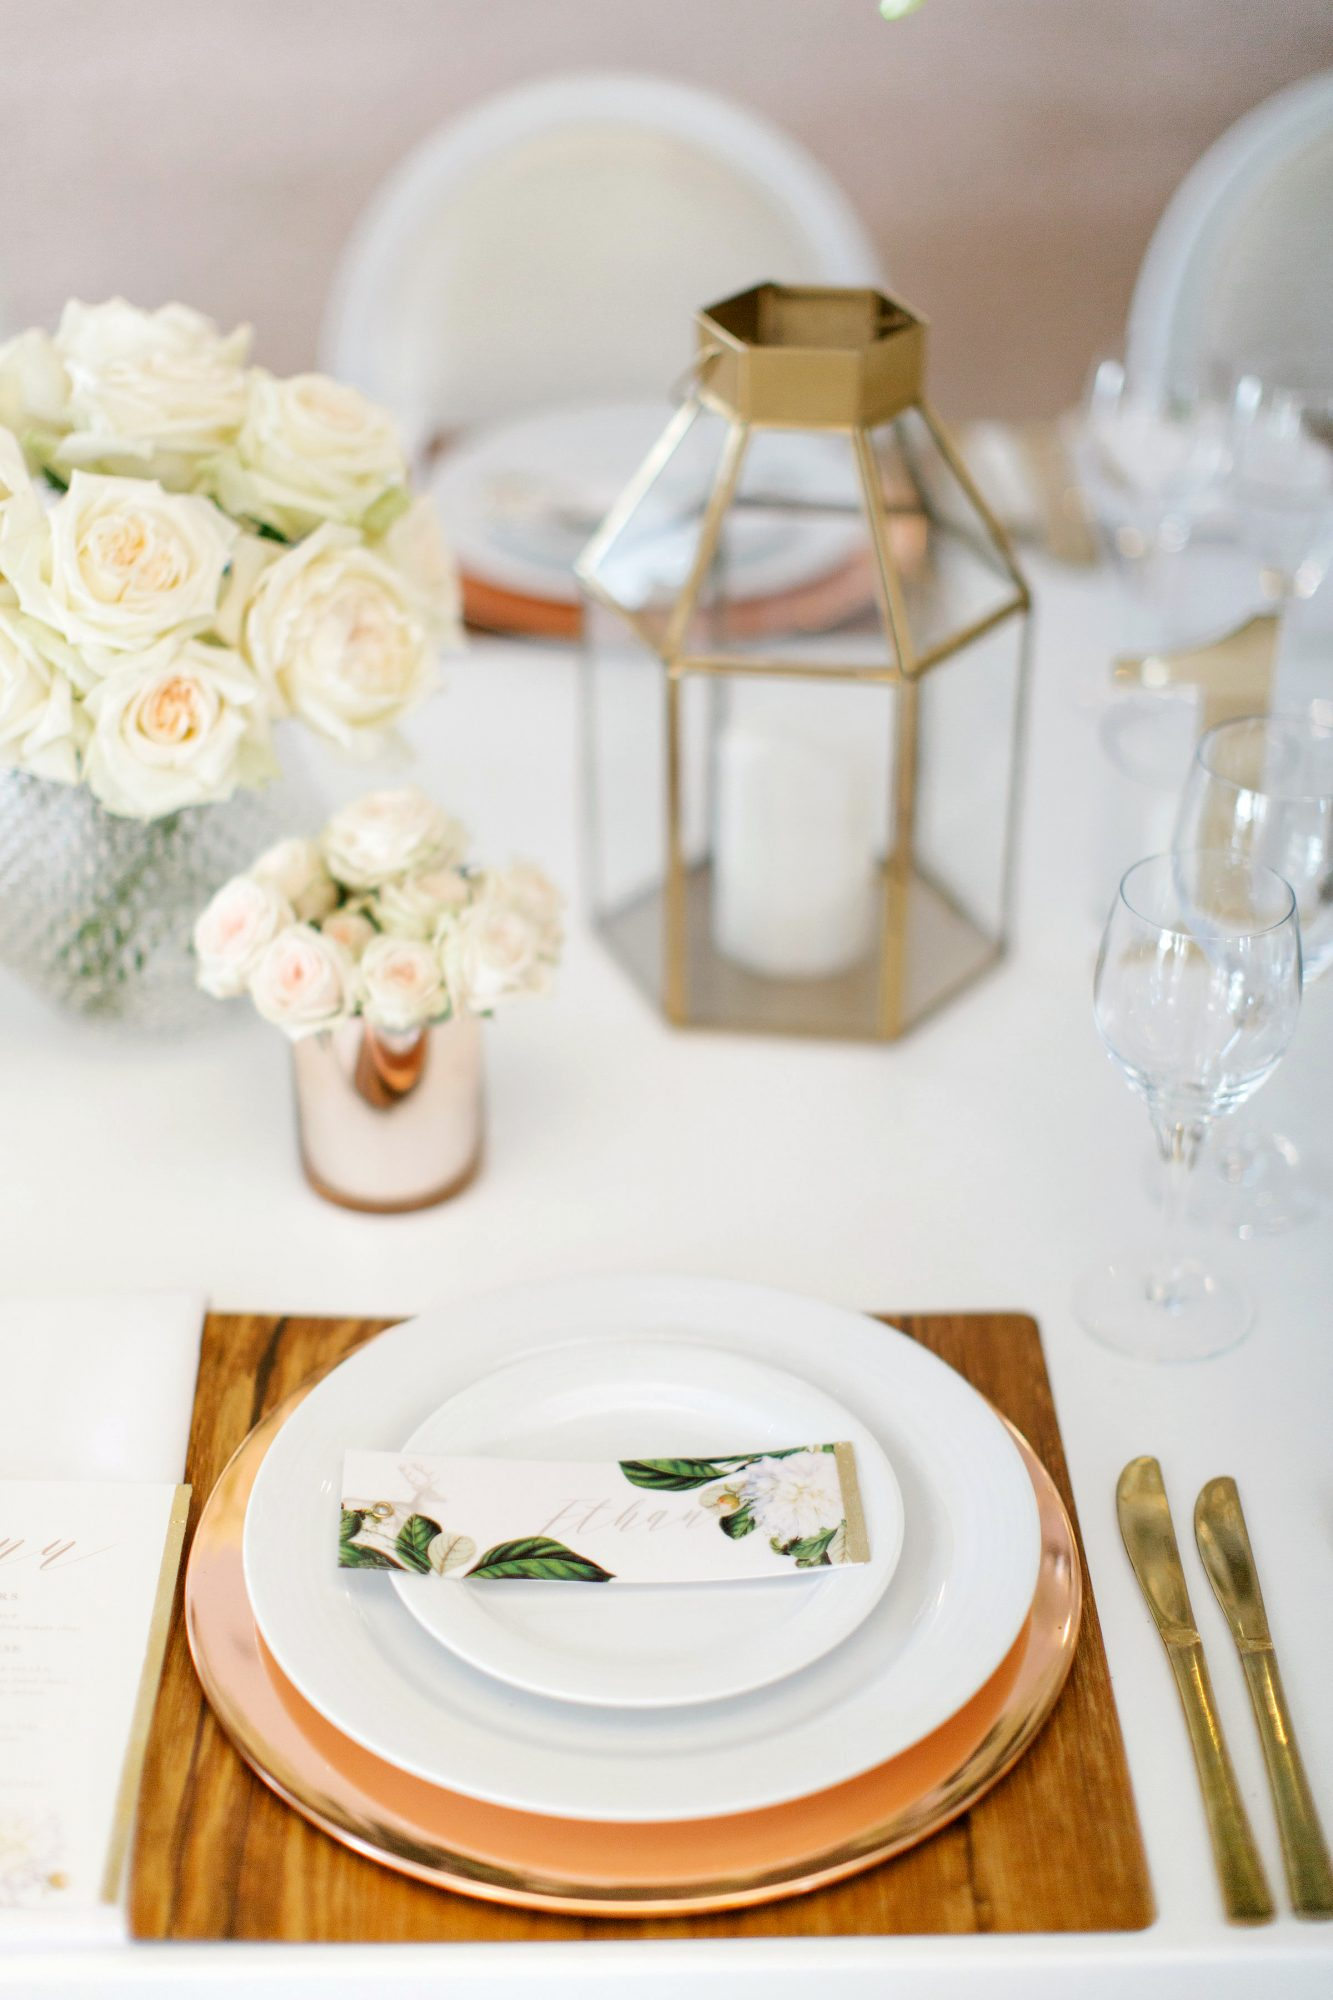 chloe shayo south africa wedding place setting